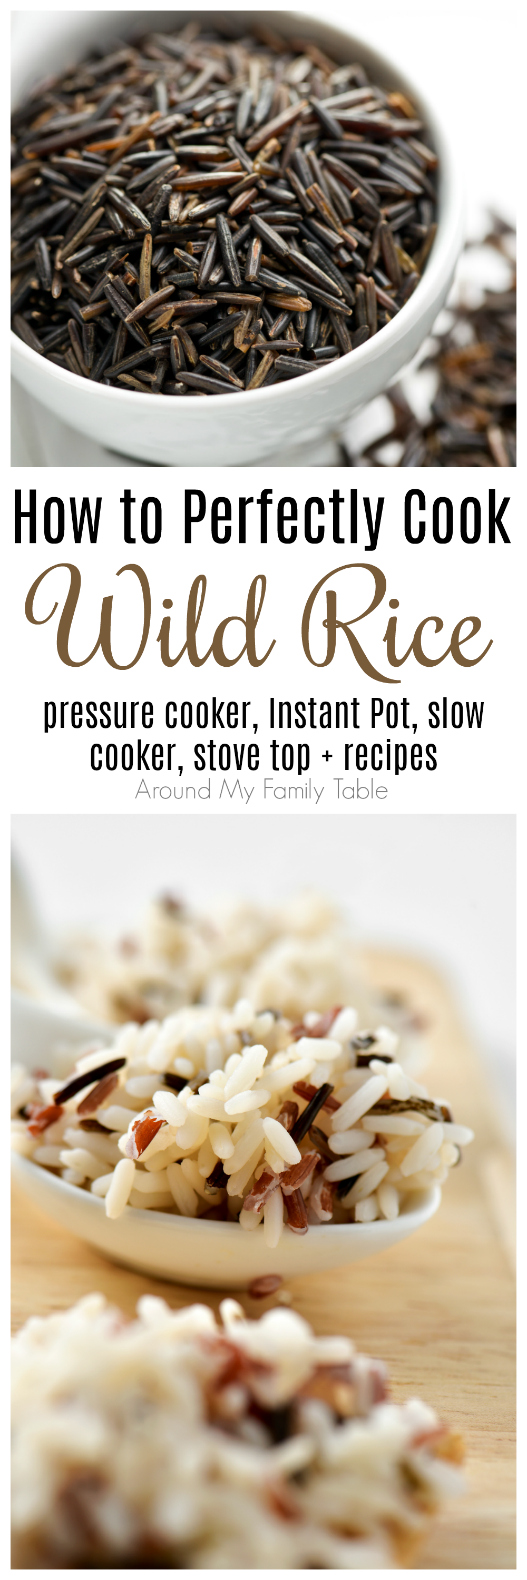 Everything you've wanted to know about wild rice. ThisHow to Cook: Wild Riceguide features instructions on using a pressure cooker, instant pot, slow cooker, and stovetop for cooking wild rice, plus there are a few delicious recipes to try as well.